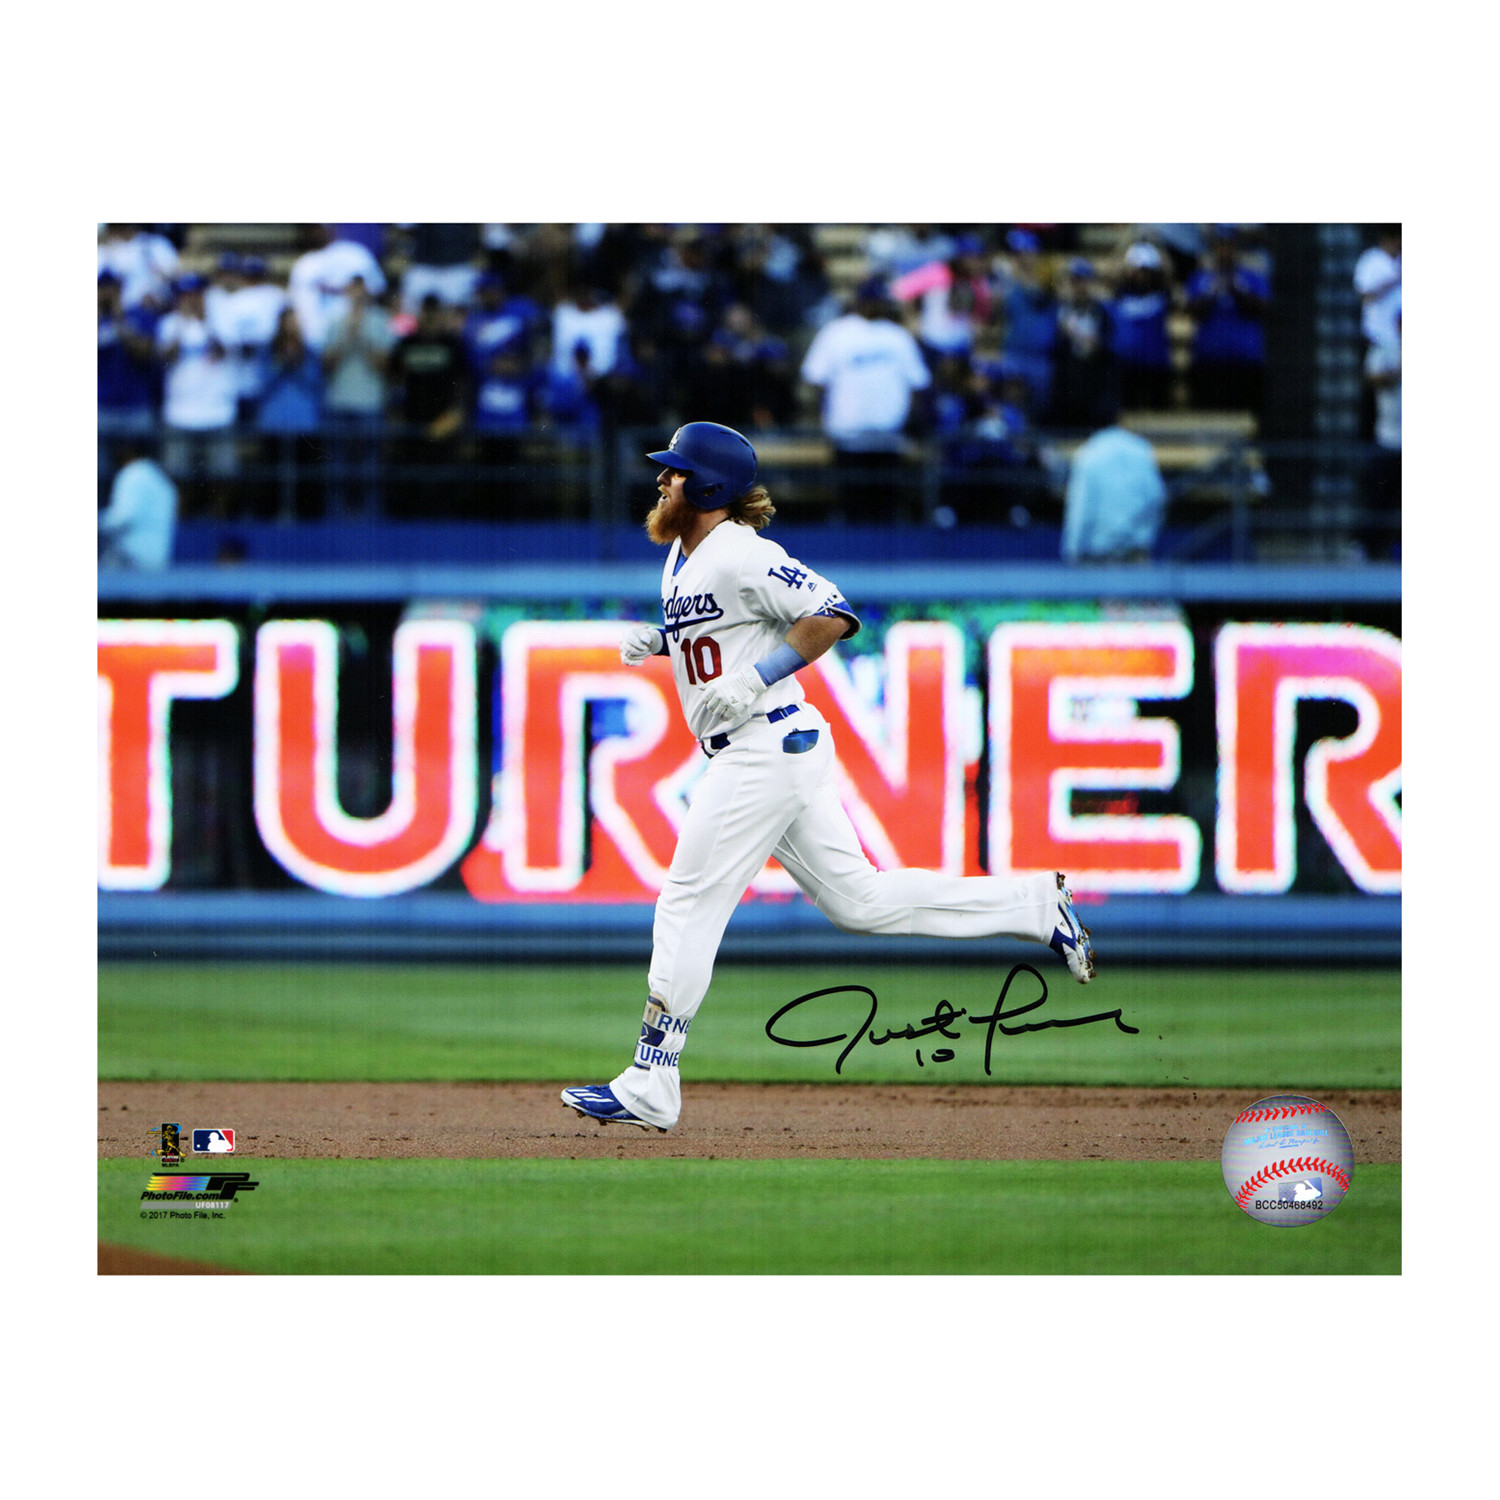 5fd6b5be8 5714e2a28ee126ef7ae08c840cca2d3e medium · Justin Turner Signed Los Angeles  Dodgers ...